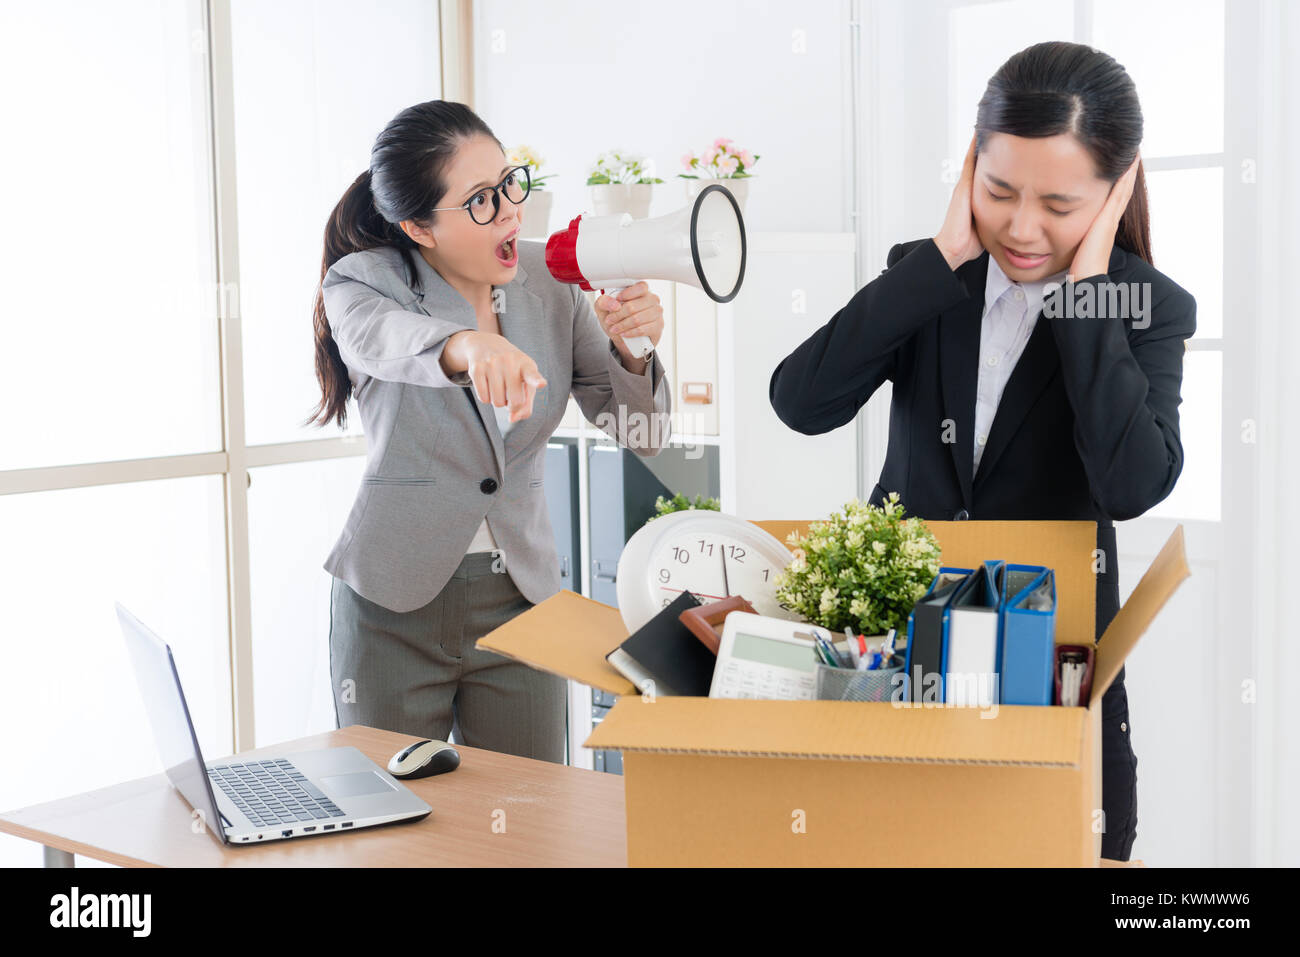 pretty attractive female boss speaking with young beauty girl business worker and using loudspeaker loudly shouting - Stock Image